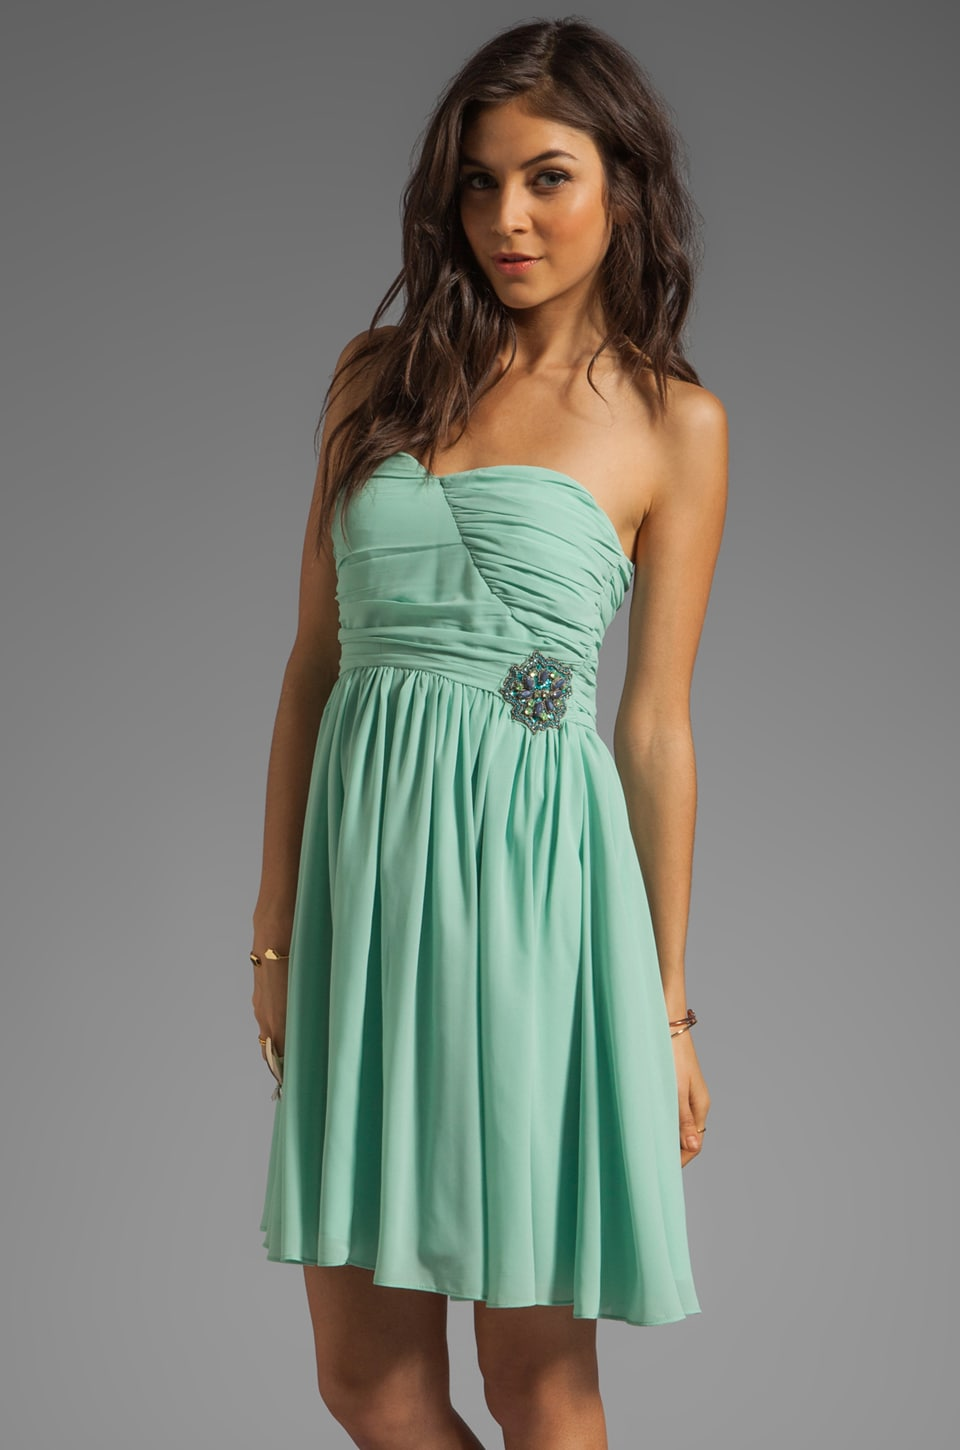 MM Couture by Miss Me Sweetheart Neckline Dress With Embroidery in Mint